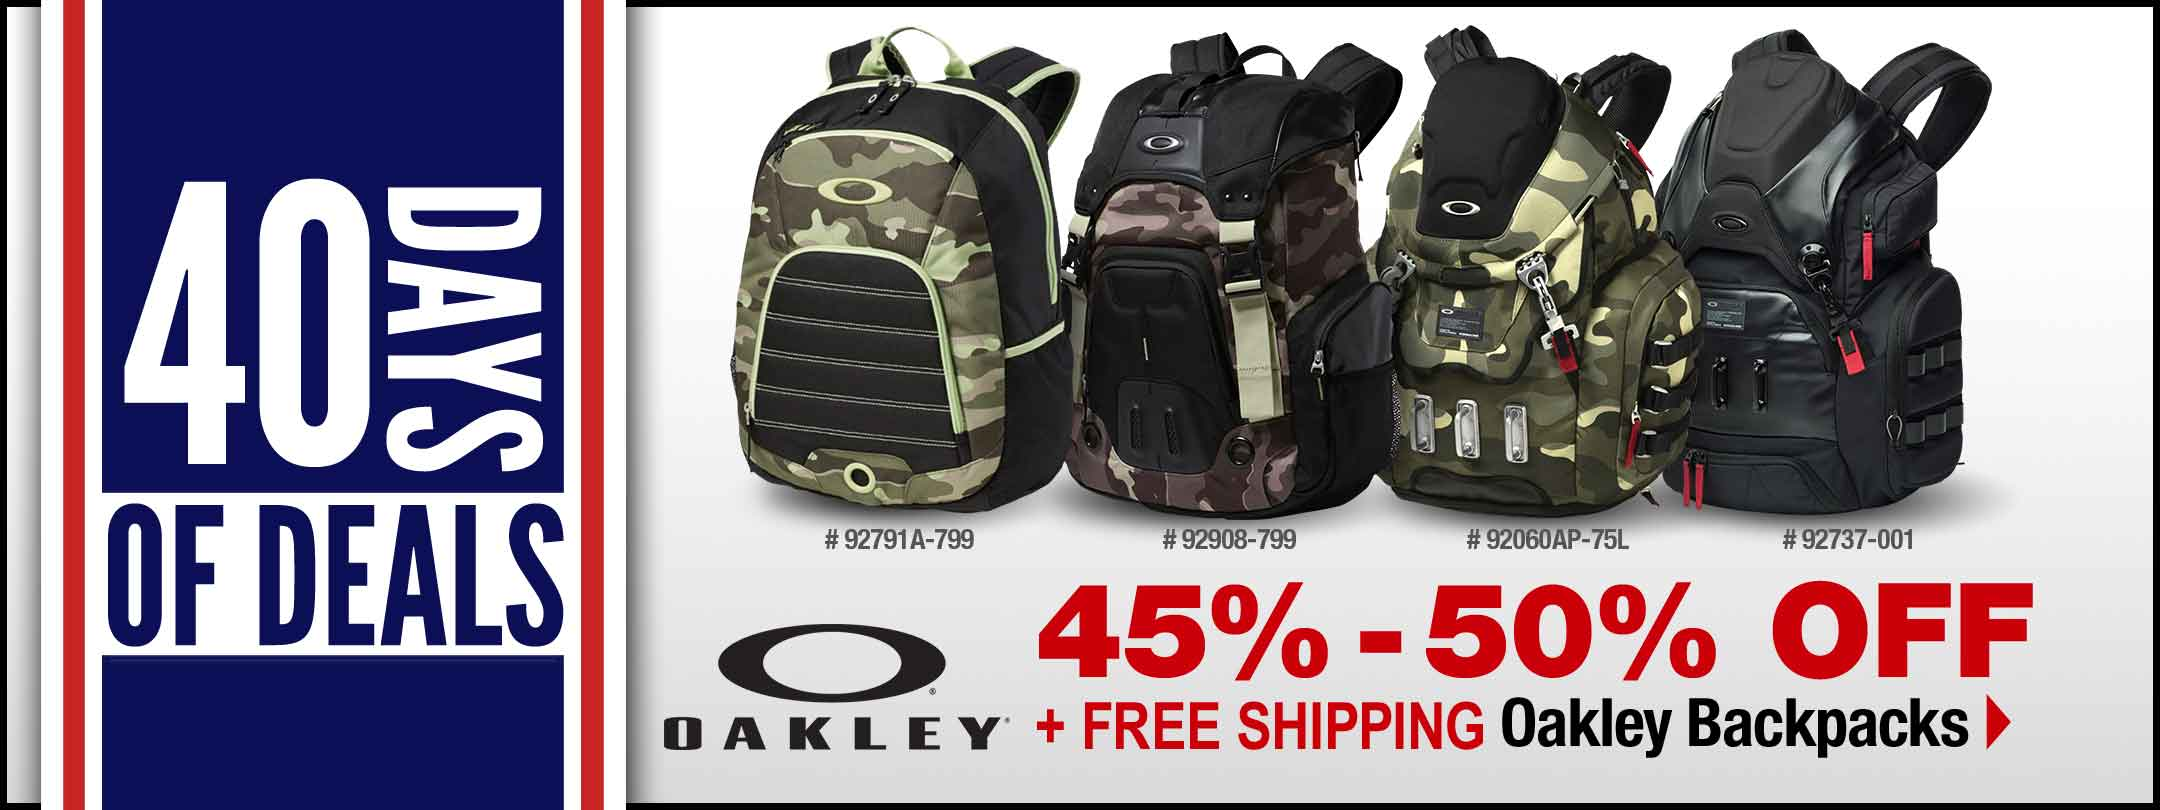 Save on Oakley Backpacks!